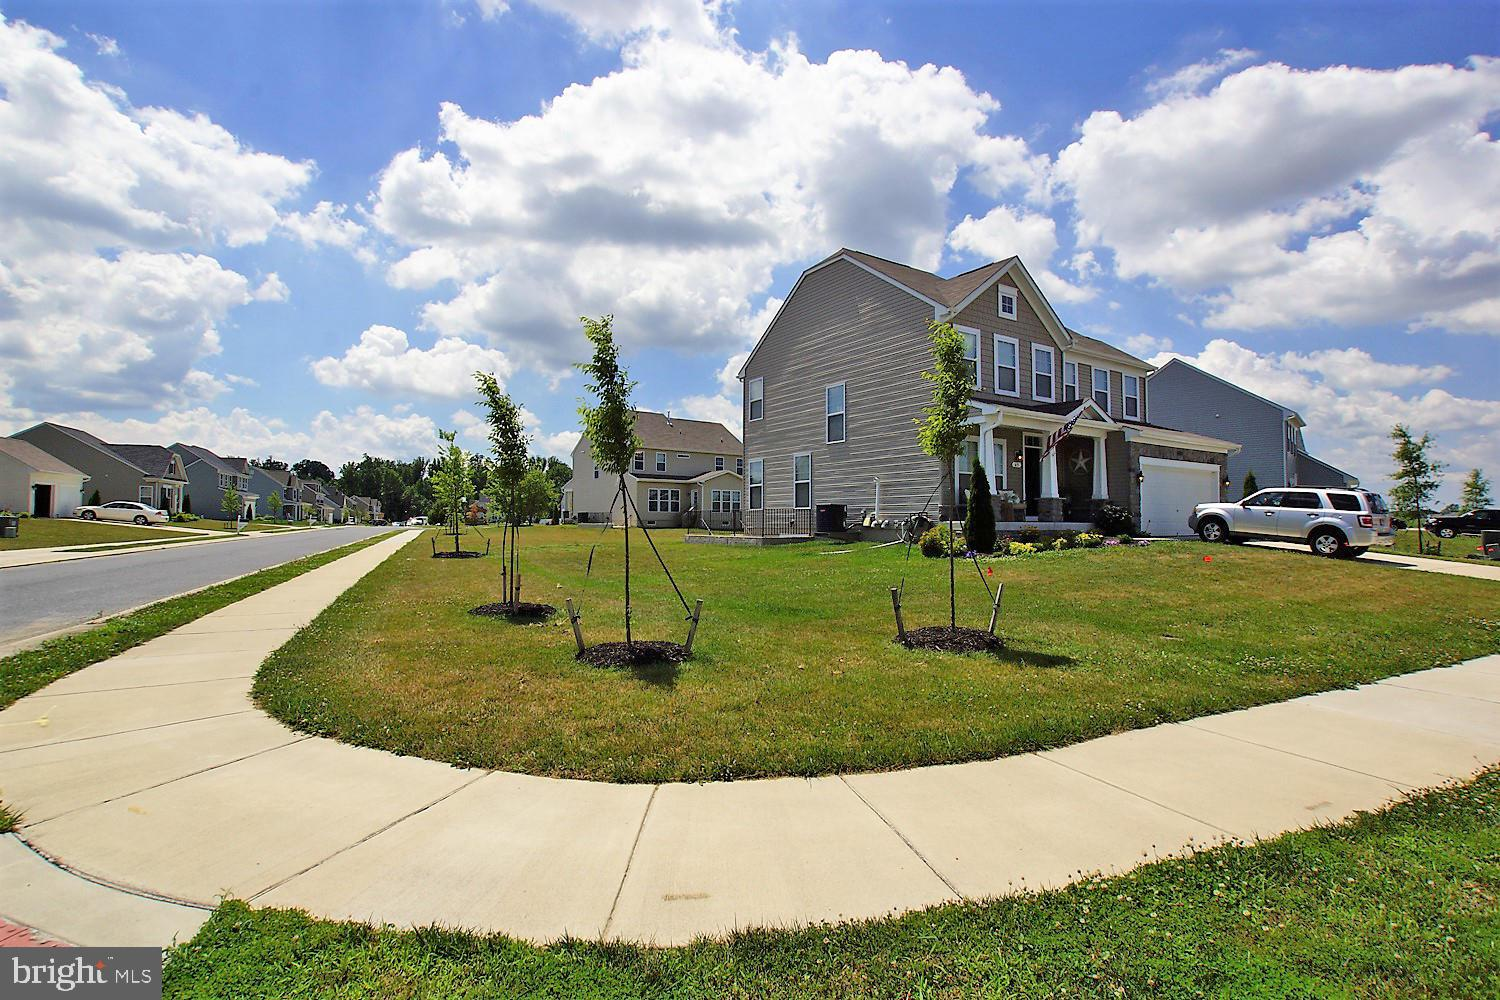 Upgrades Galore! Finished basement! If you have ever dreamed of owning a model home this is your opportunity! This home has a full front porch, stone front, custom siding on a corner lot. As you enter the home you will feel like you are entering a model home with all of the upgrades. The first floor features beautiful gleaming LVT flooring, open gourmet kitchen, with large island, morning room and oversized family room and office/playroom. Transition upstairs and you will find a very large master with walk in closet, tiled bath, 3 additional bedrooms and a full laundry room. The basement is complete with bar, full bath large great room, game room, sliding door to walk out stairs and egress windows. This home is a must see and all located in the desirable Caesar Rodney School District! Put this on your next tour.